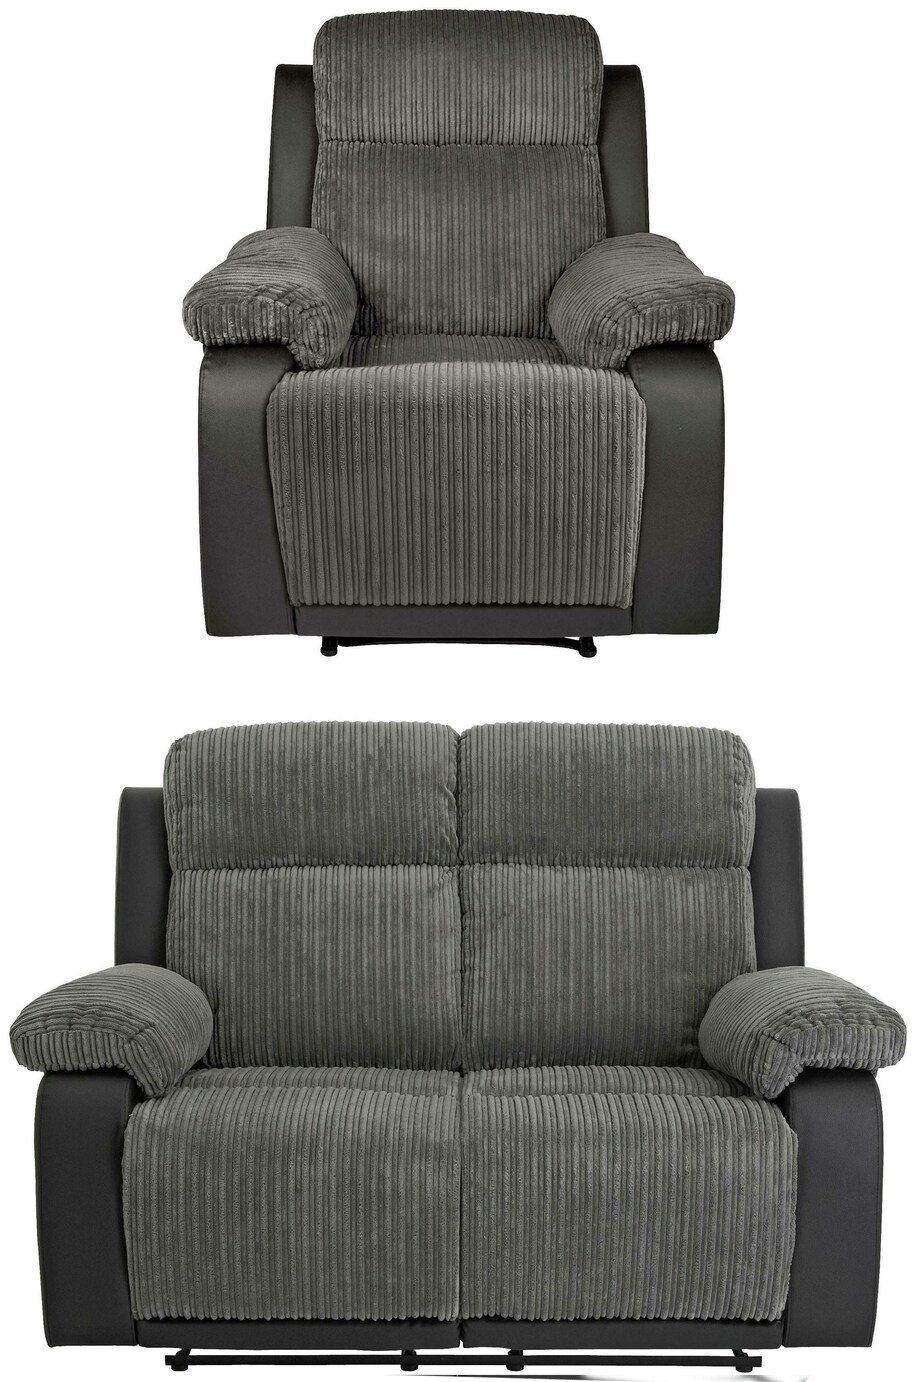 Collection Bradley 2 Seat Recliner Sofa and Chair -Charcoal